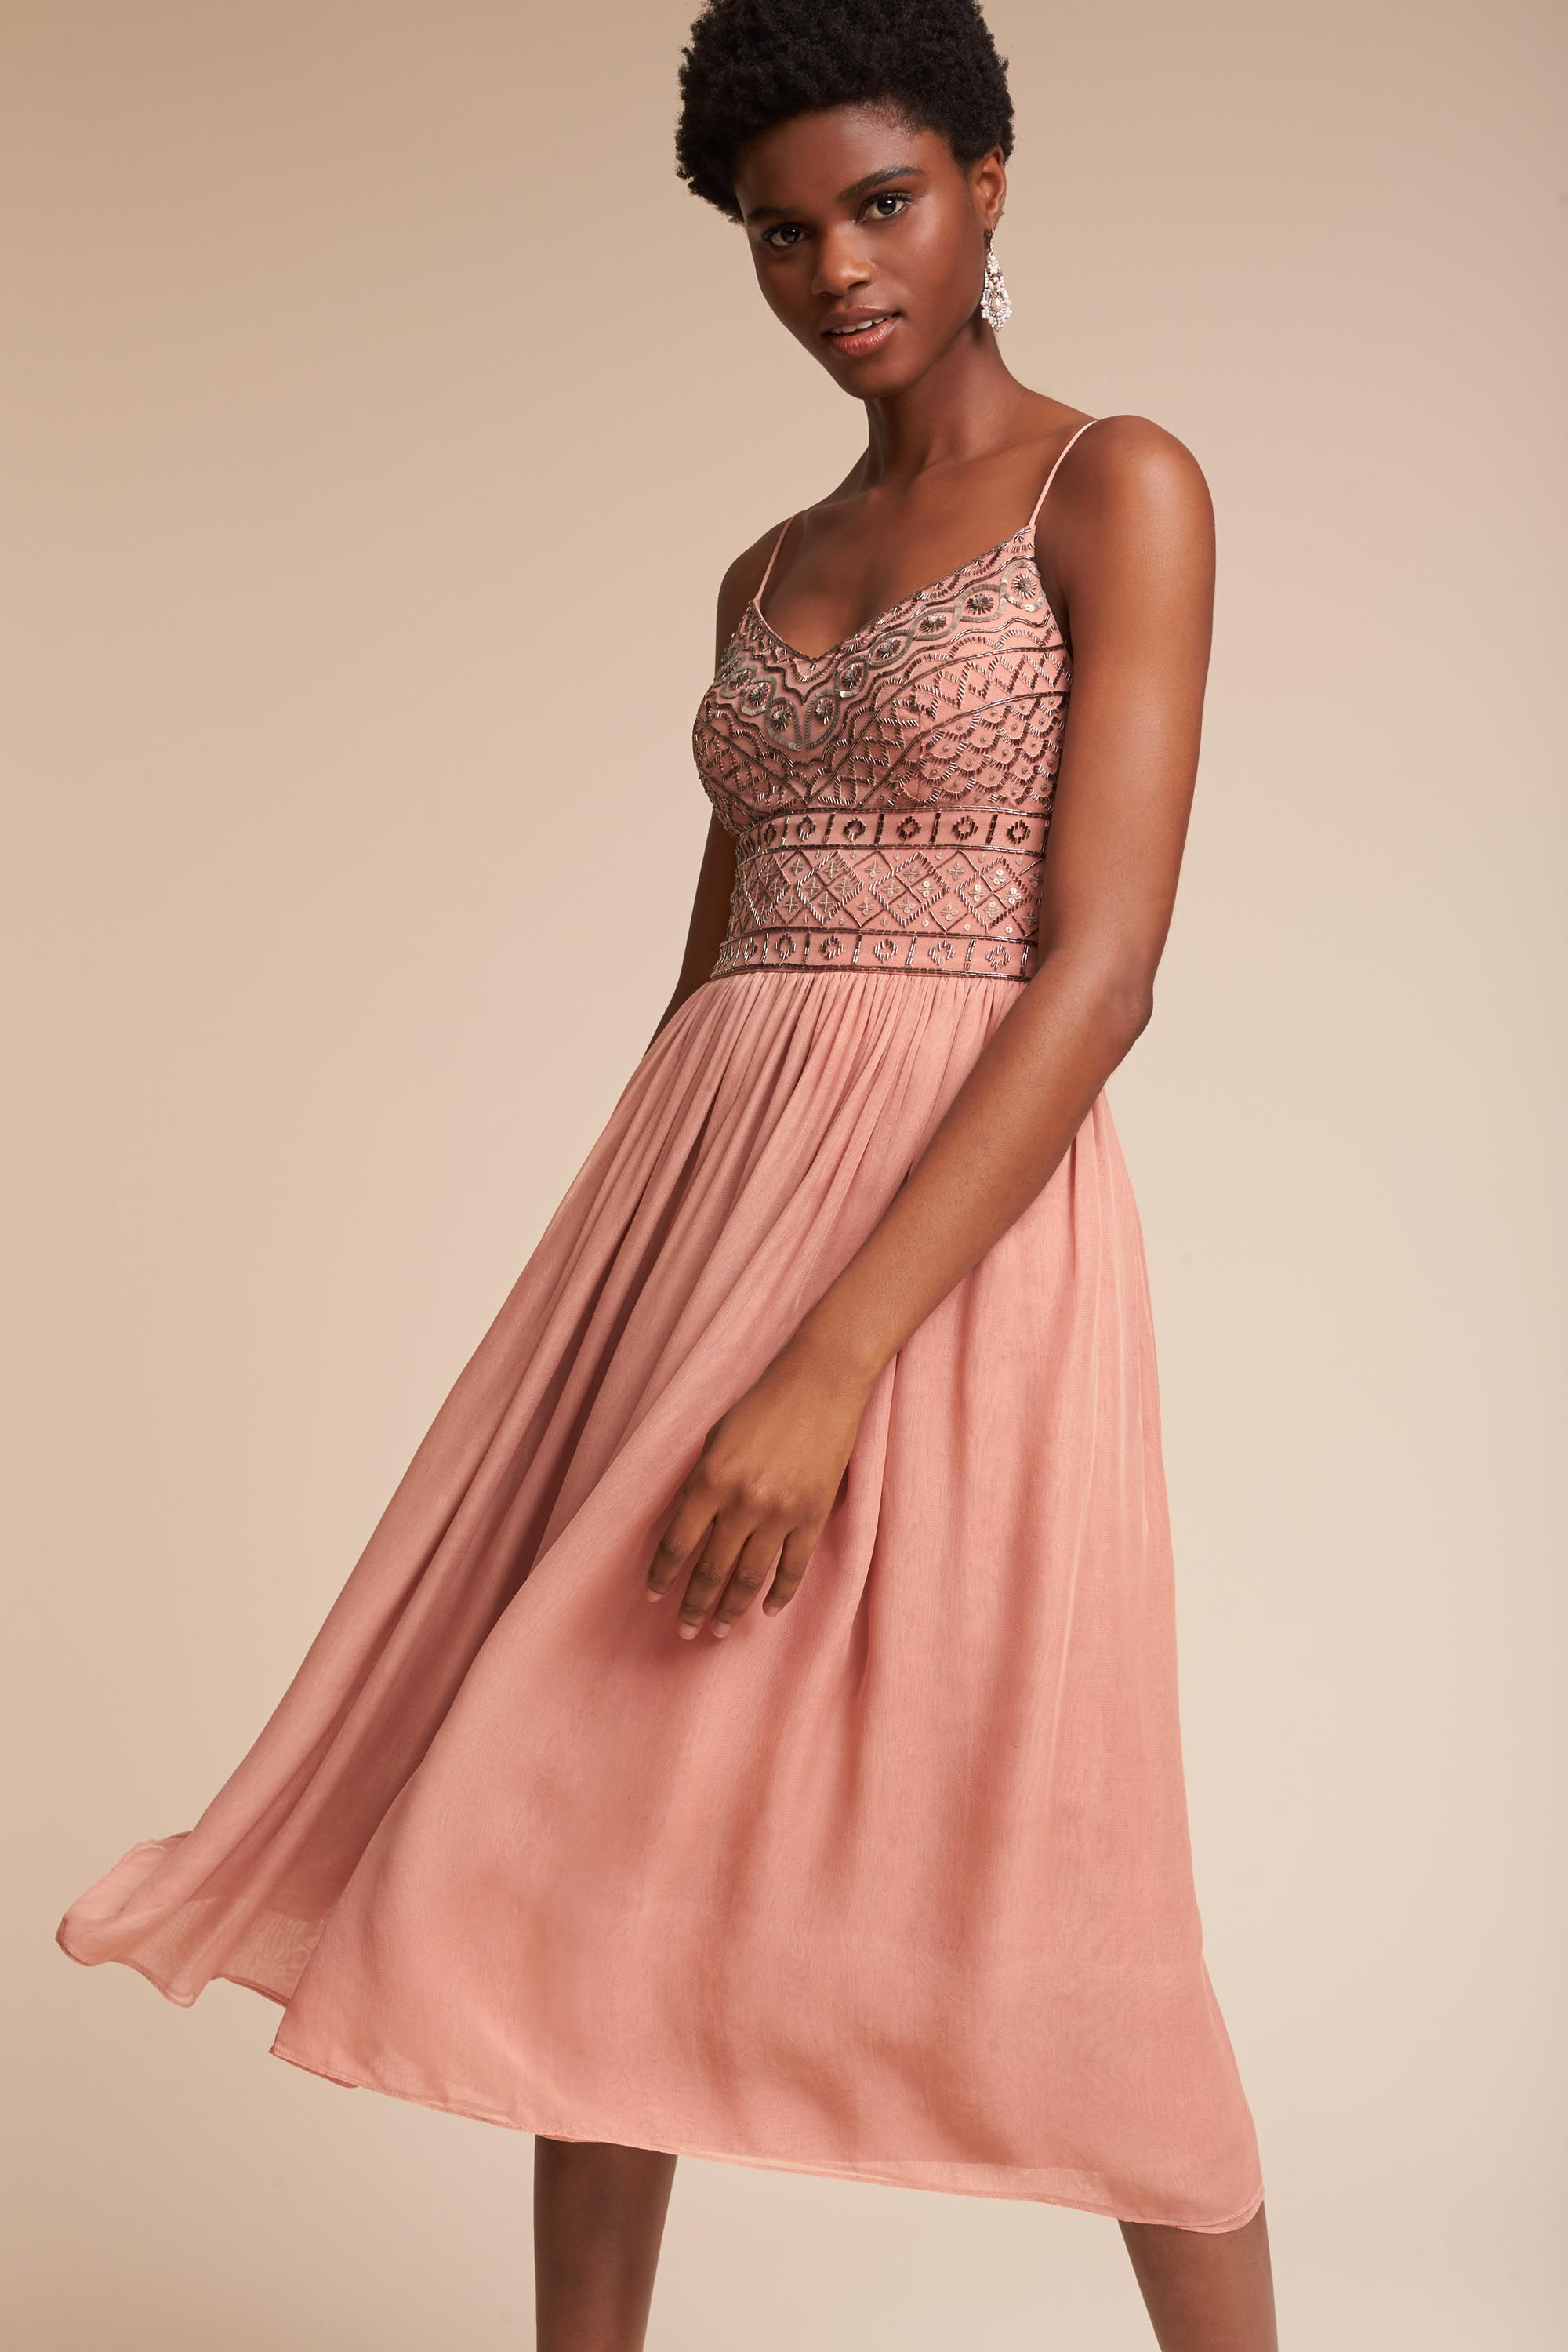 Dresses to wear to a fall wedding for a guest  Bristol Dress from BHLDN  Fall Wedding  Pinterest  Bristol